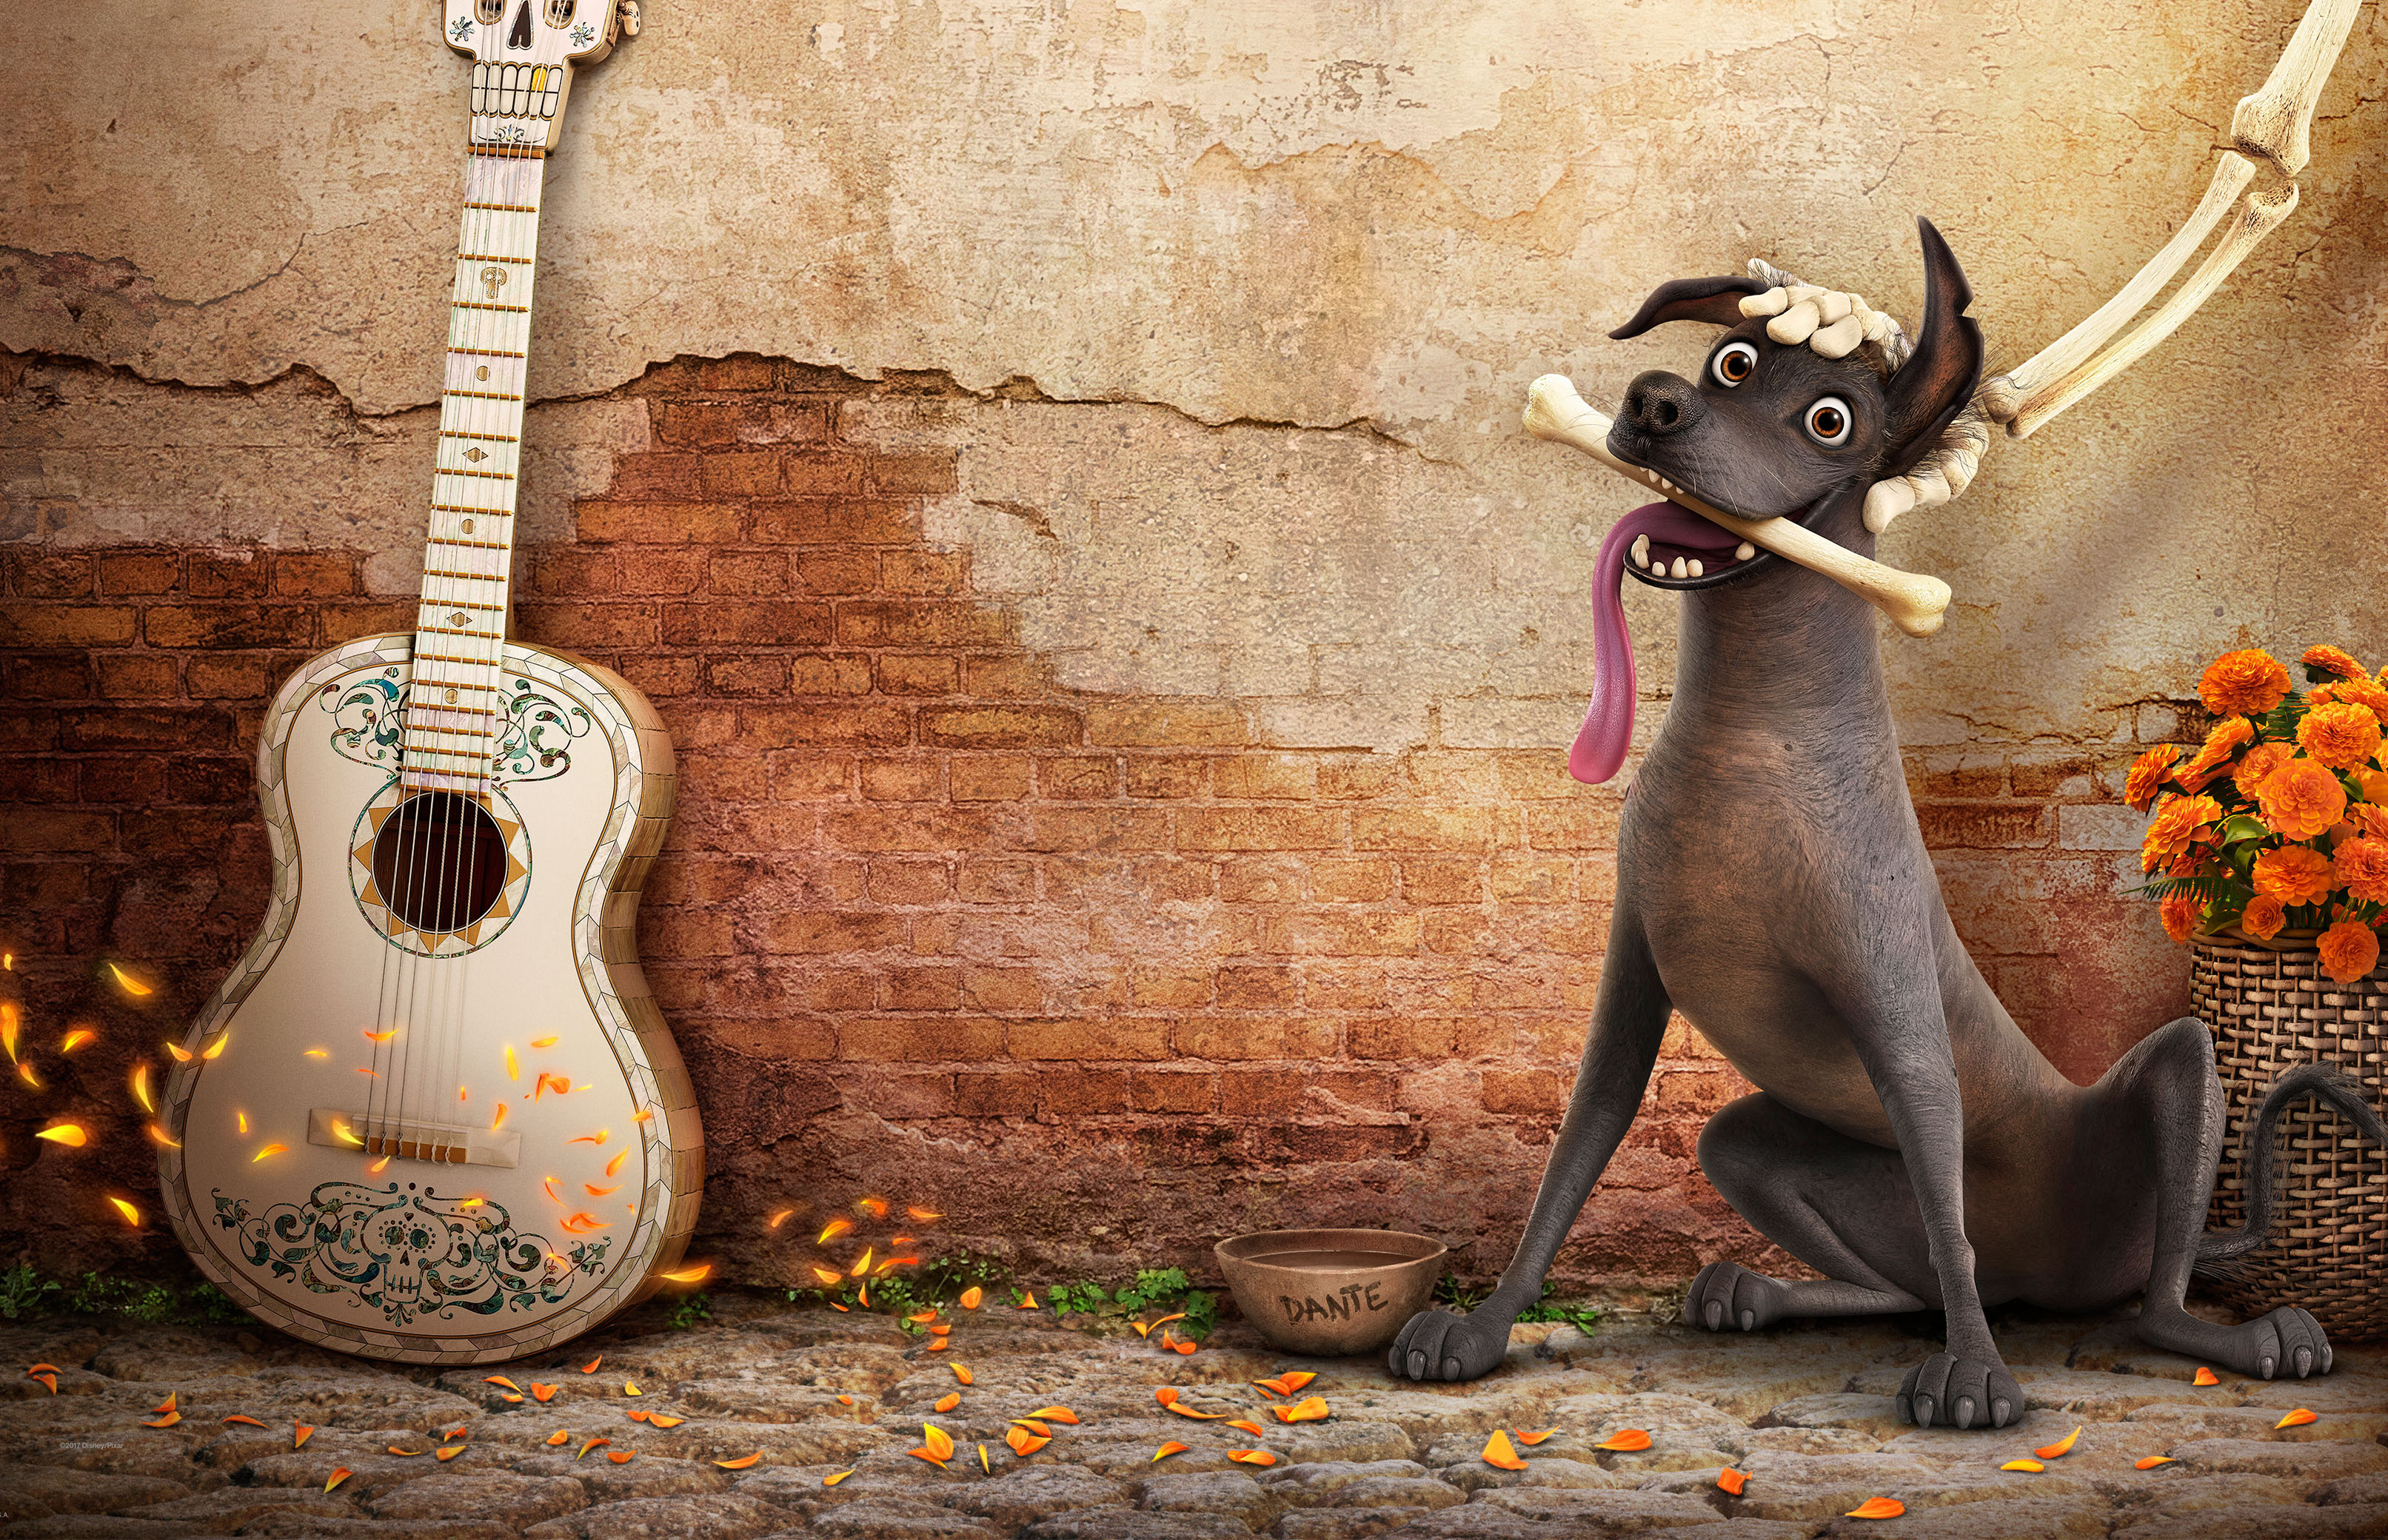 Coco HD Movies 4k Wallpapers Images Backgrounds Photos And Pictures